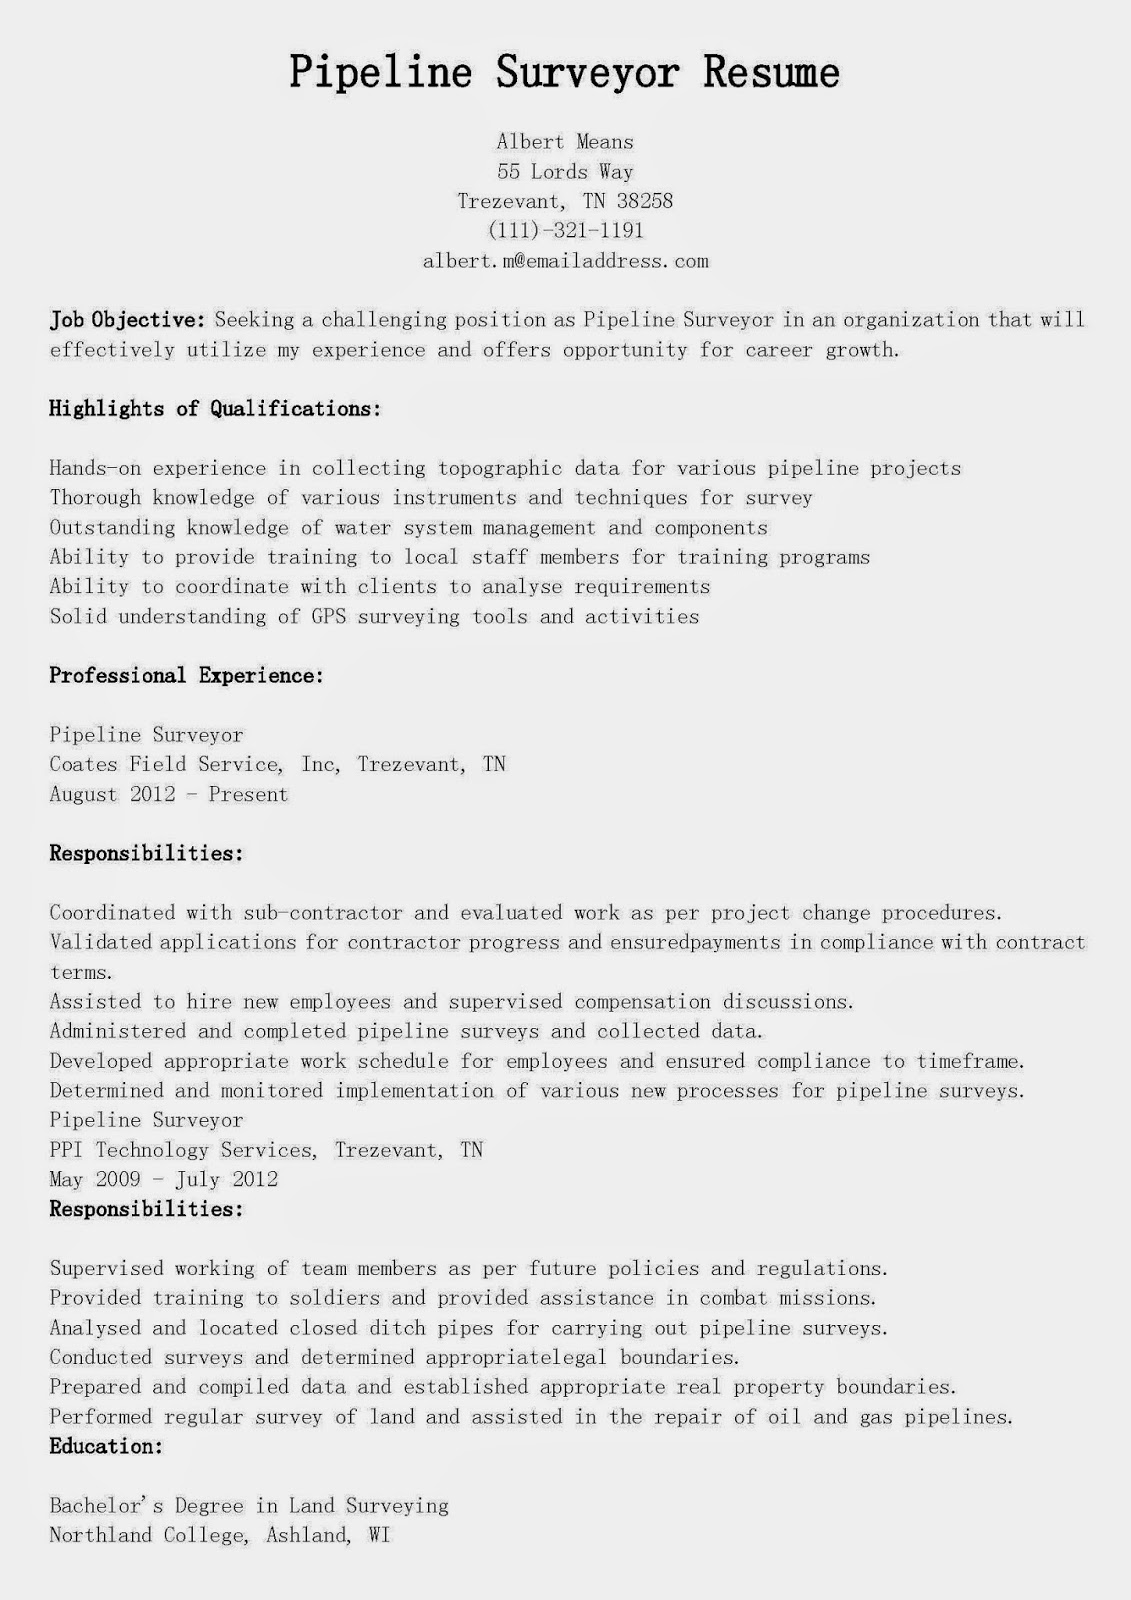 resume sles pipeline surveyor resume sle